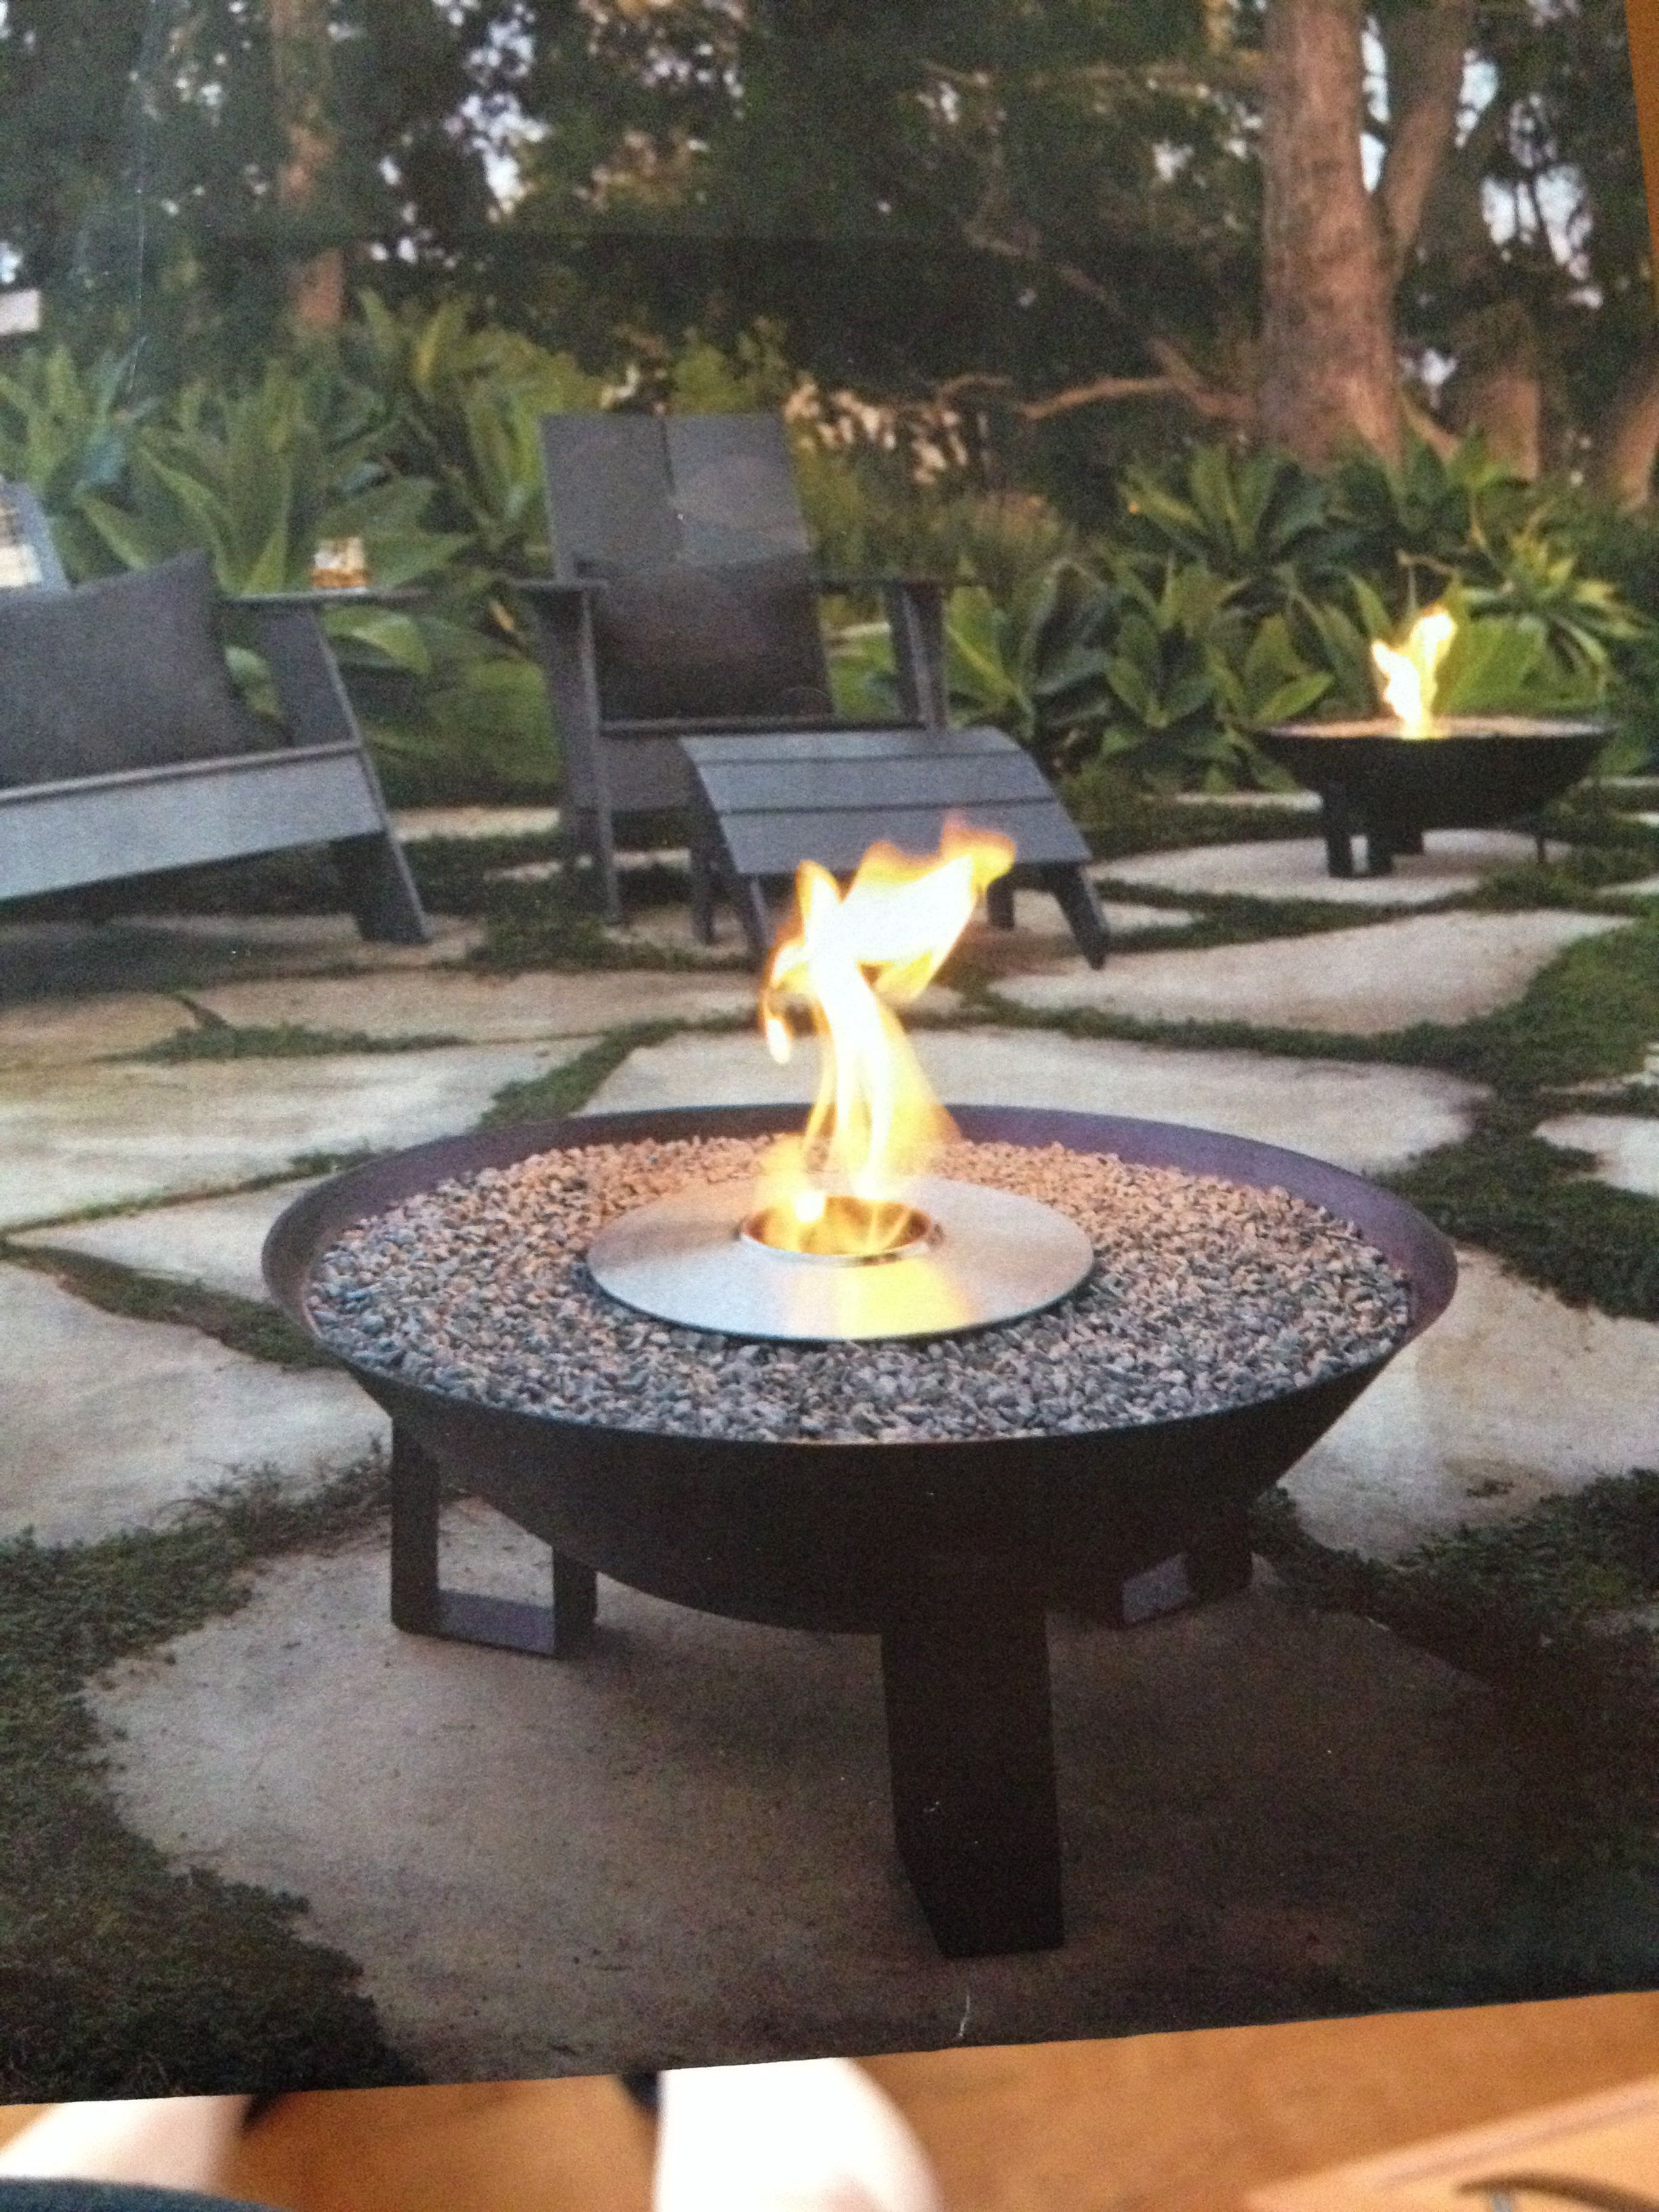 35 Inspiring Diy Fire Pit Ideas Plans To Make Smores With Your with proportions 2448 X 3264